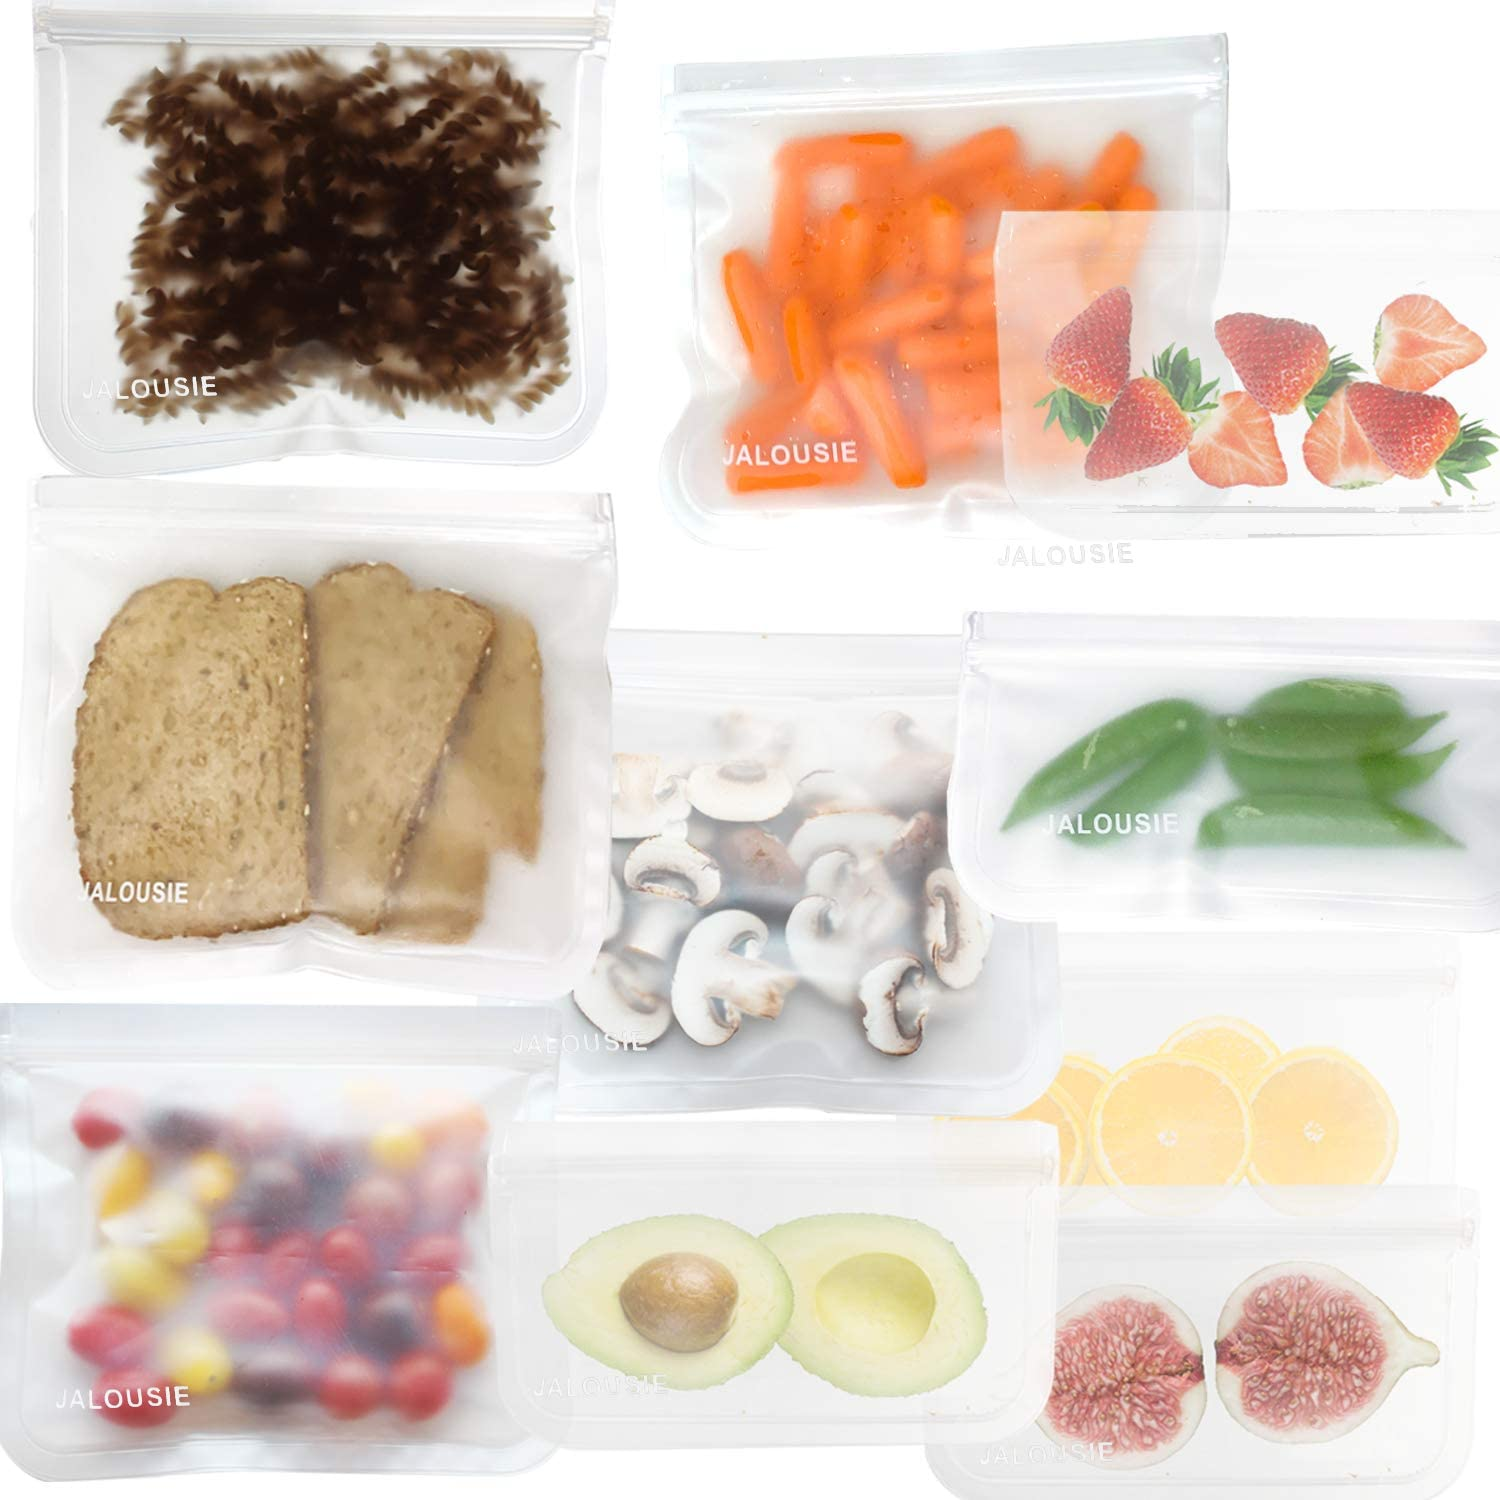 JALOUSIE Reusable Storage Bags (10 Pack) Extra Thick Zipper Bag for Snacks, sandwiches, stationery, travel 3-1-1 clear bag (clear)